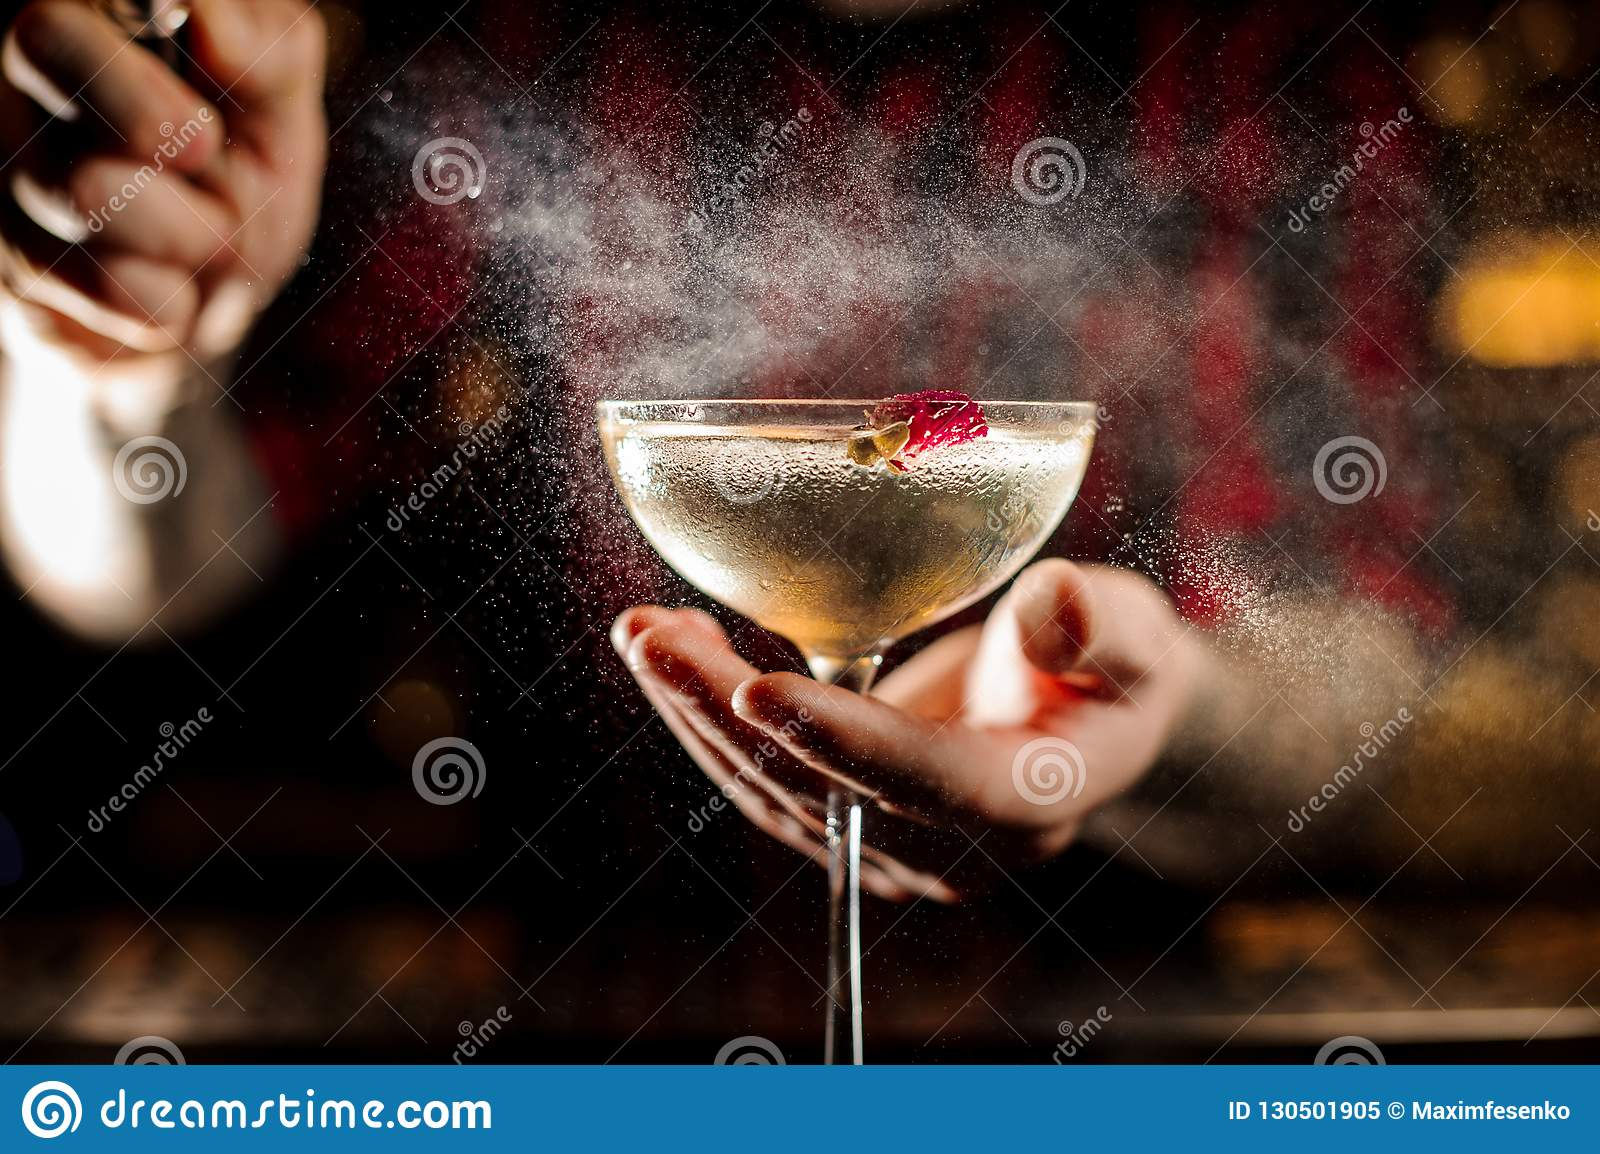 Professional bartender spraying on a Twinkle cocktail in the bar